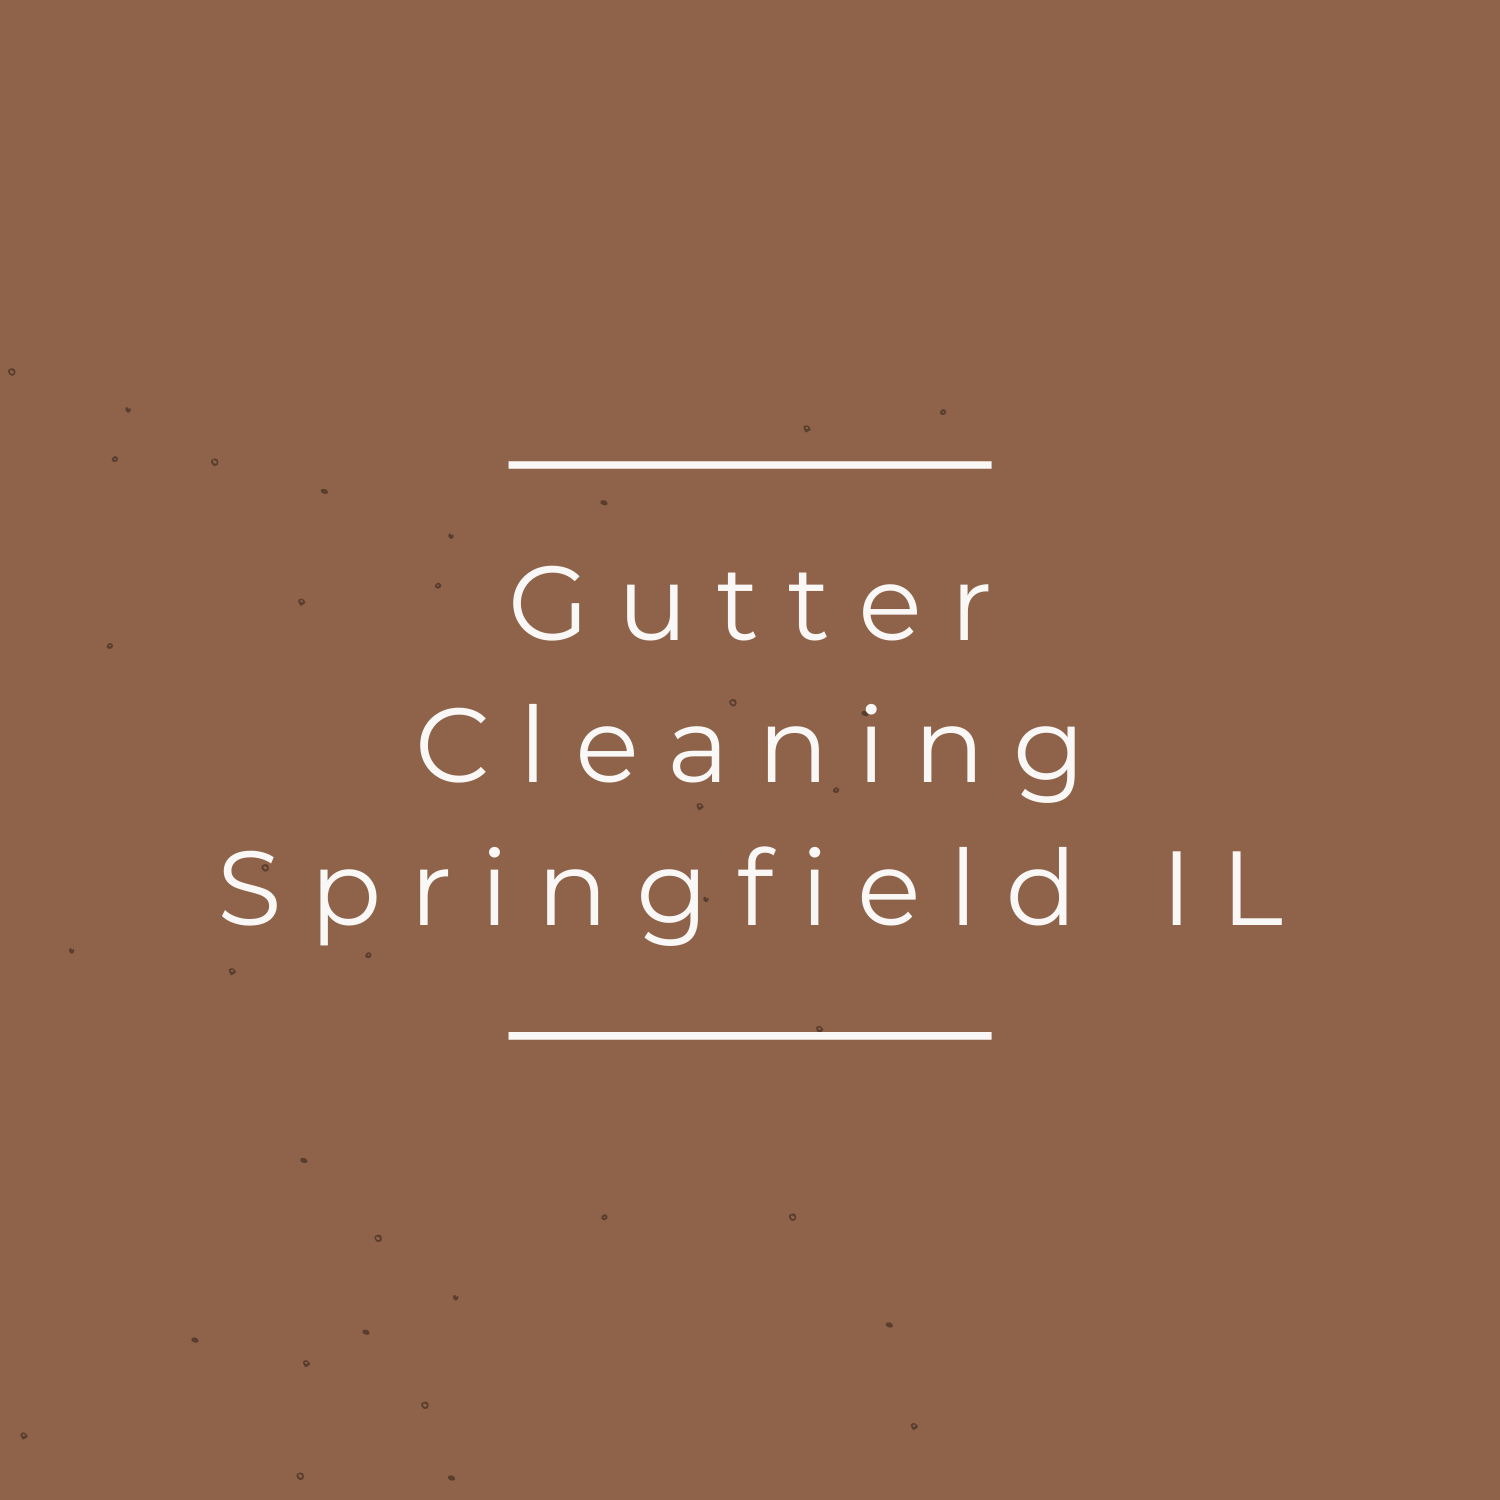 Gutter Cleaning Springfield IL